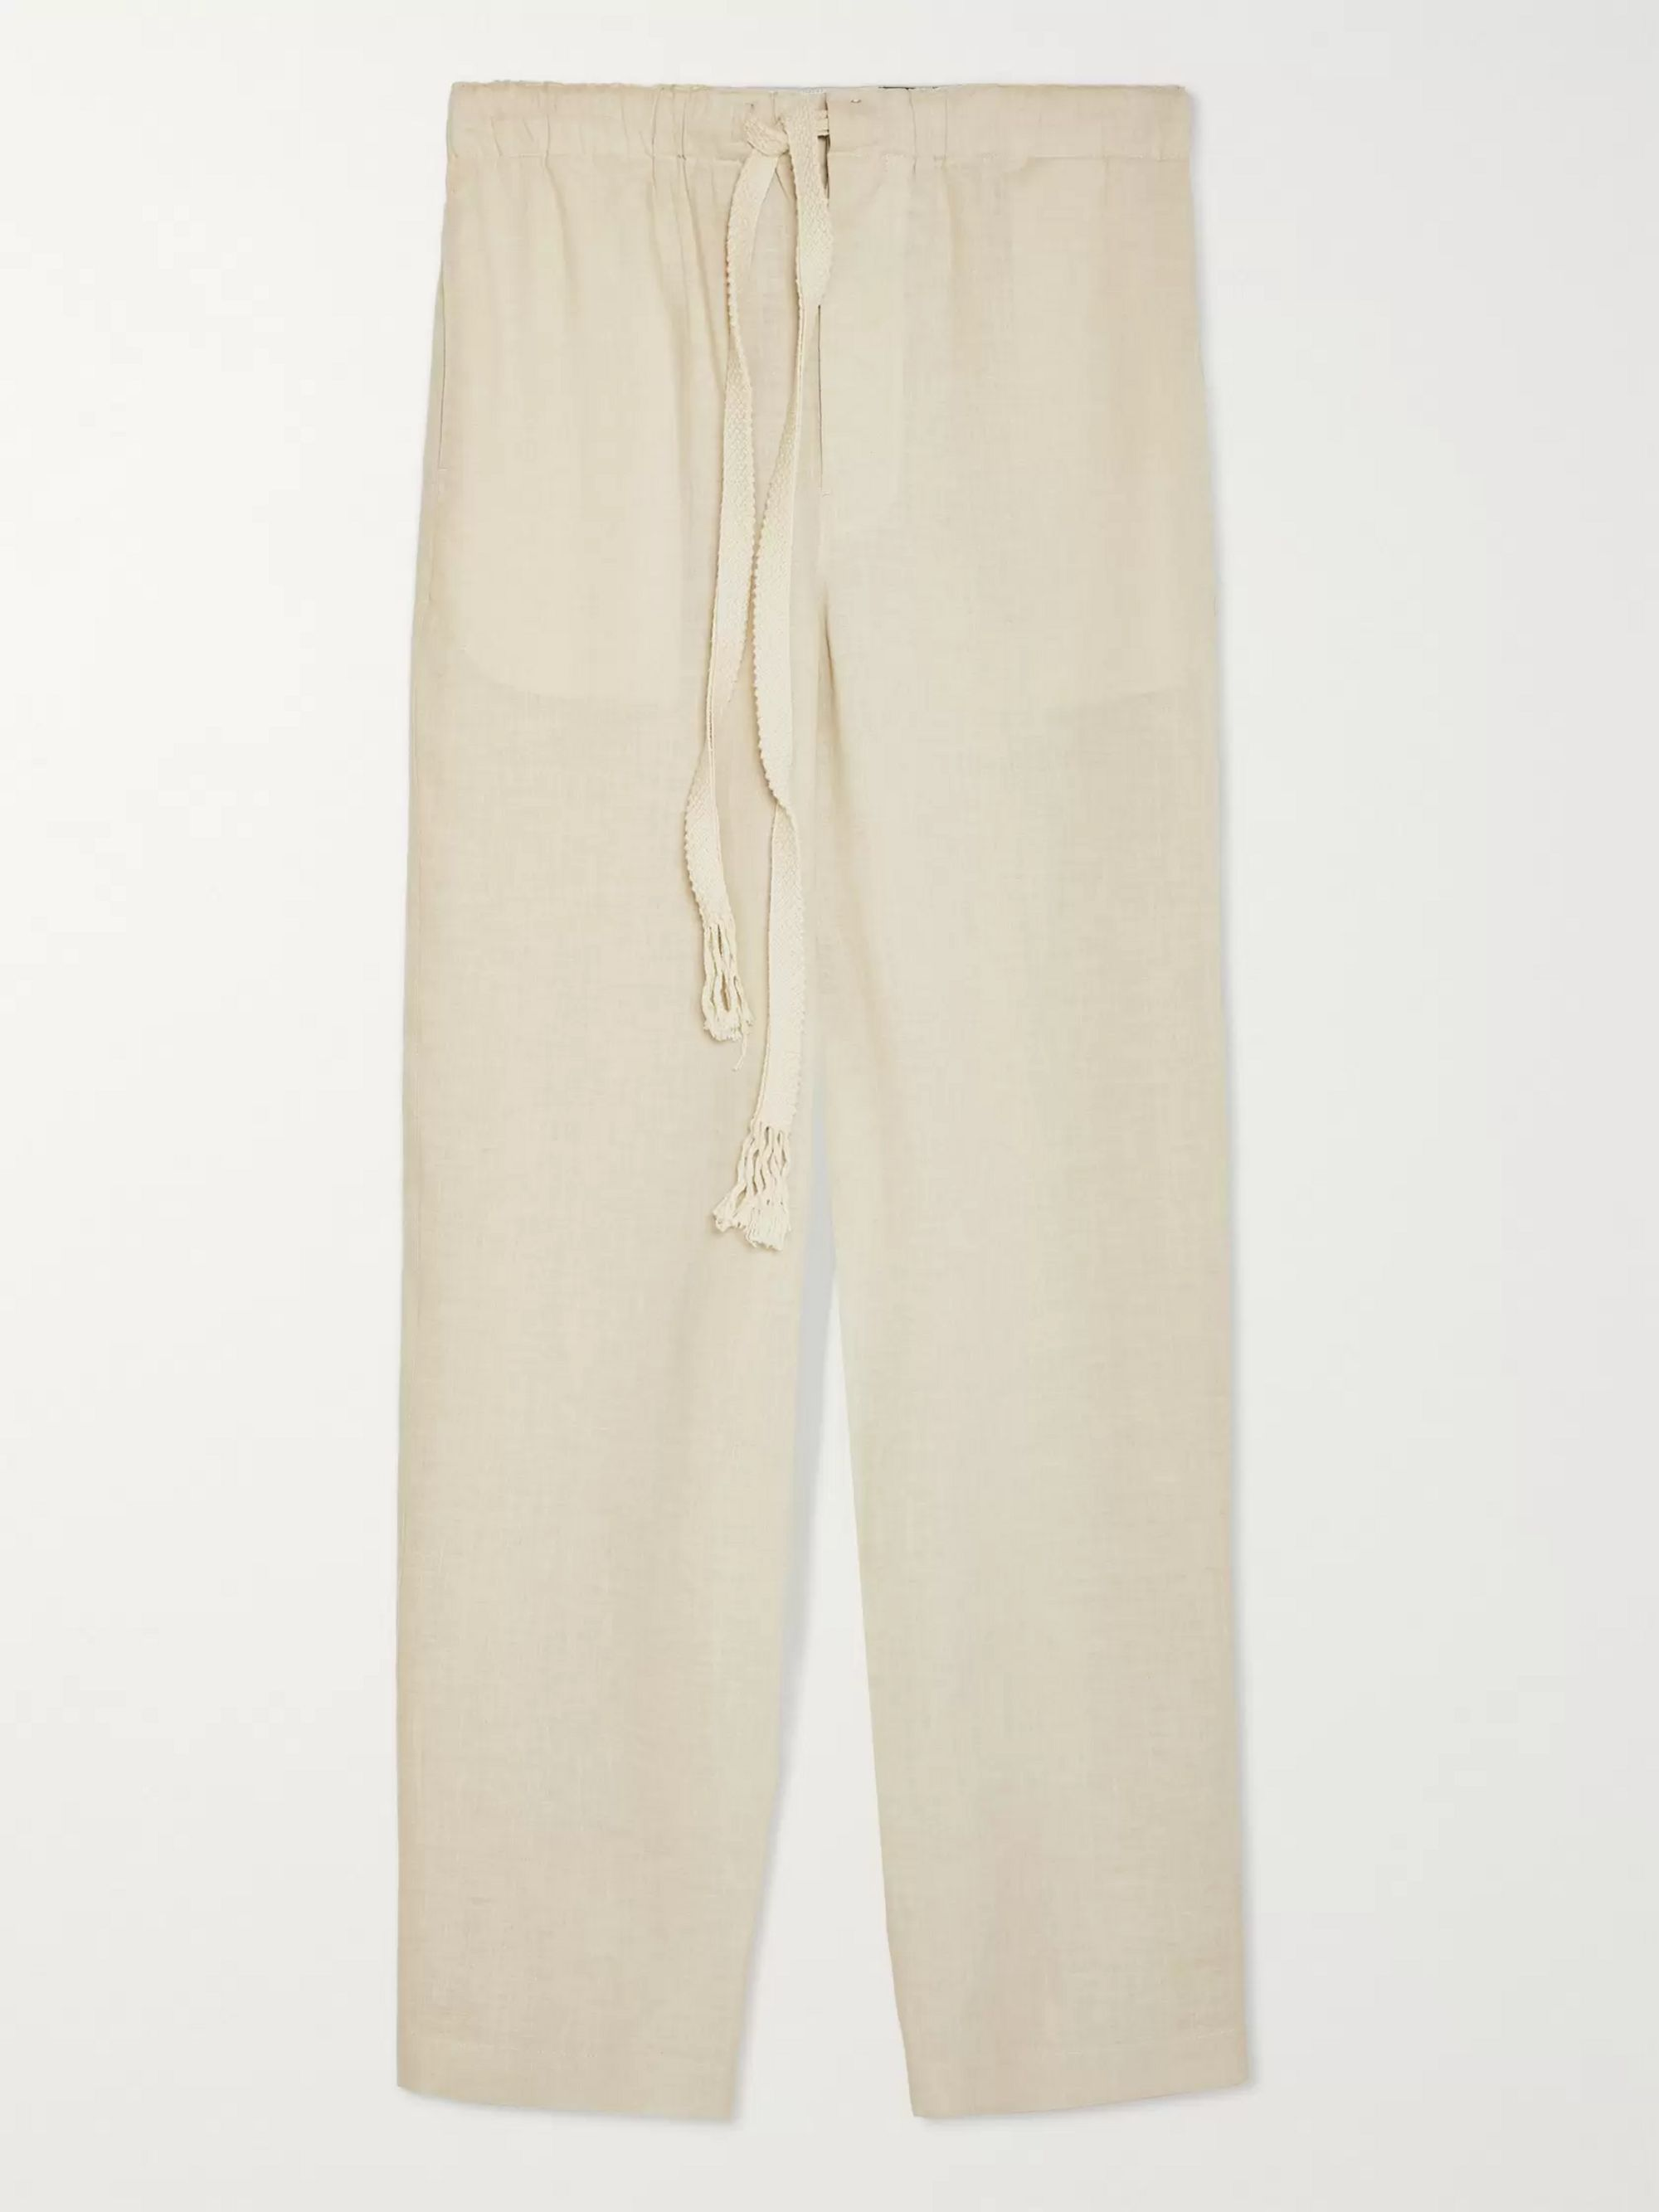 Loewe + Paula's Ibiza Linen and Cotton-Blend Drawstring Trousers